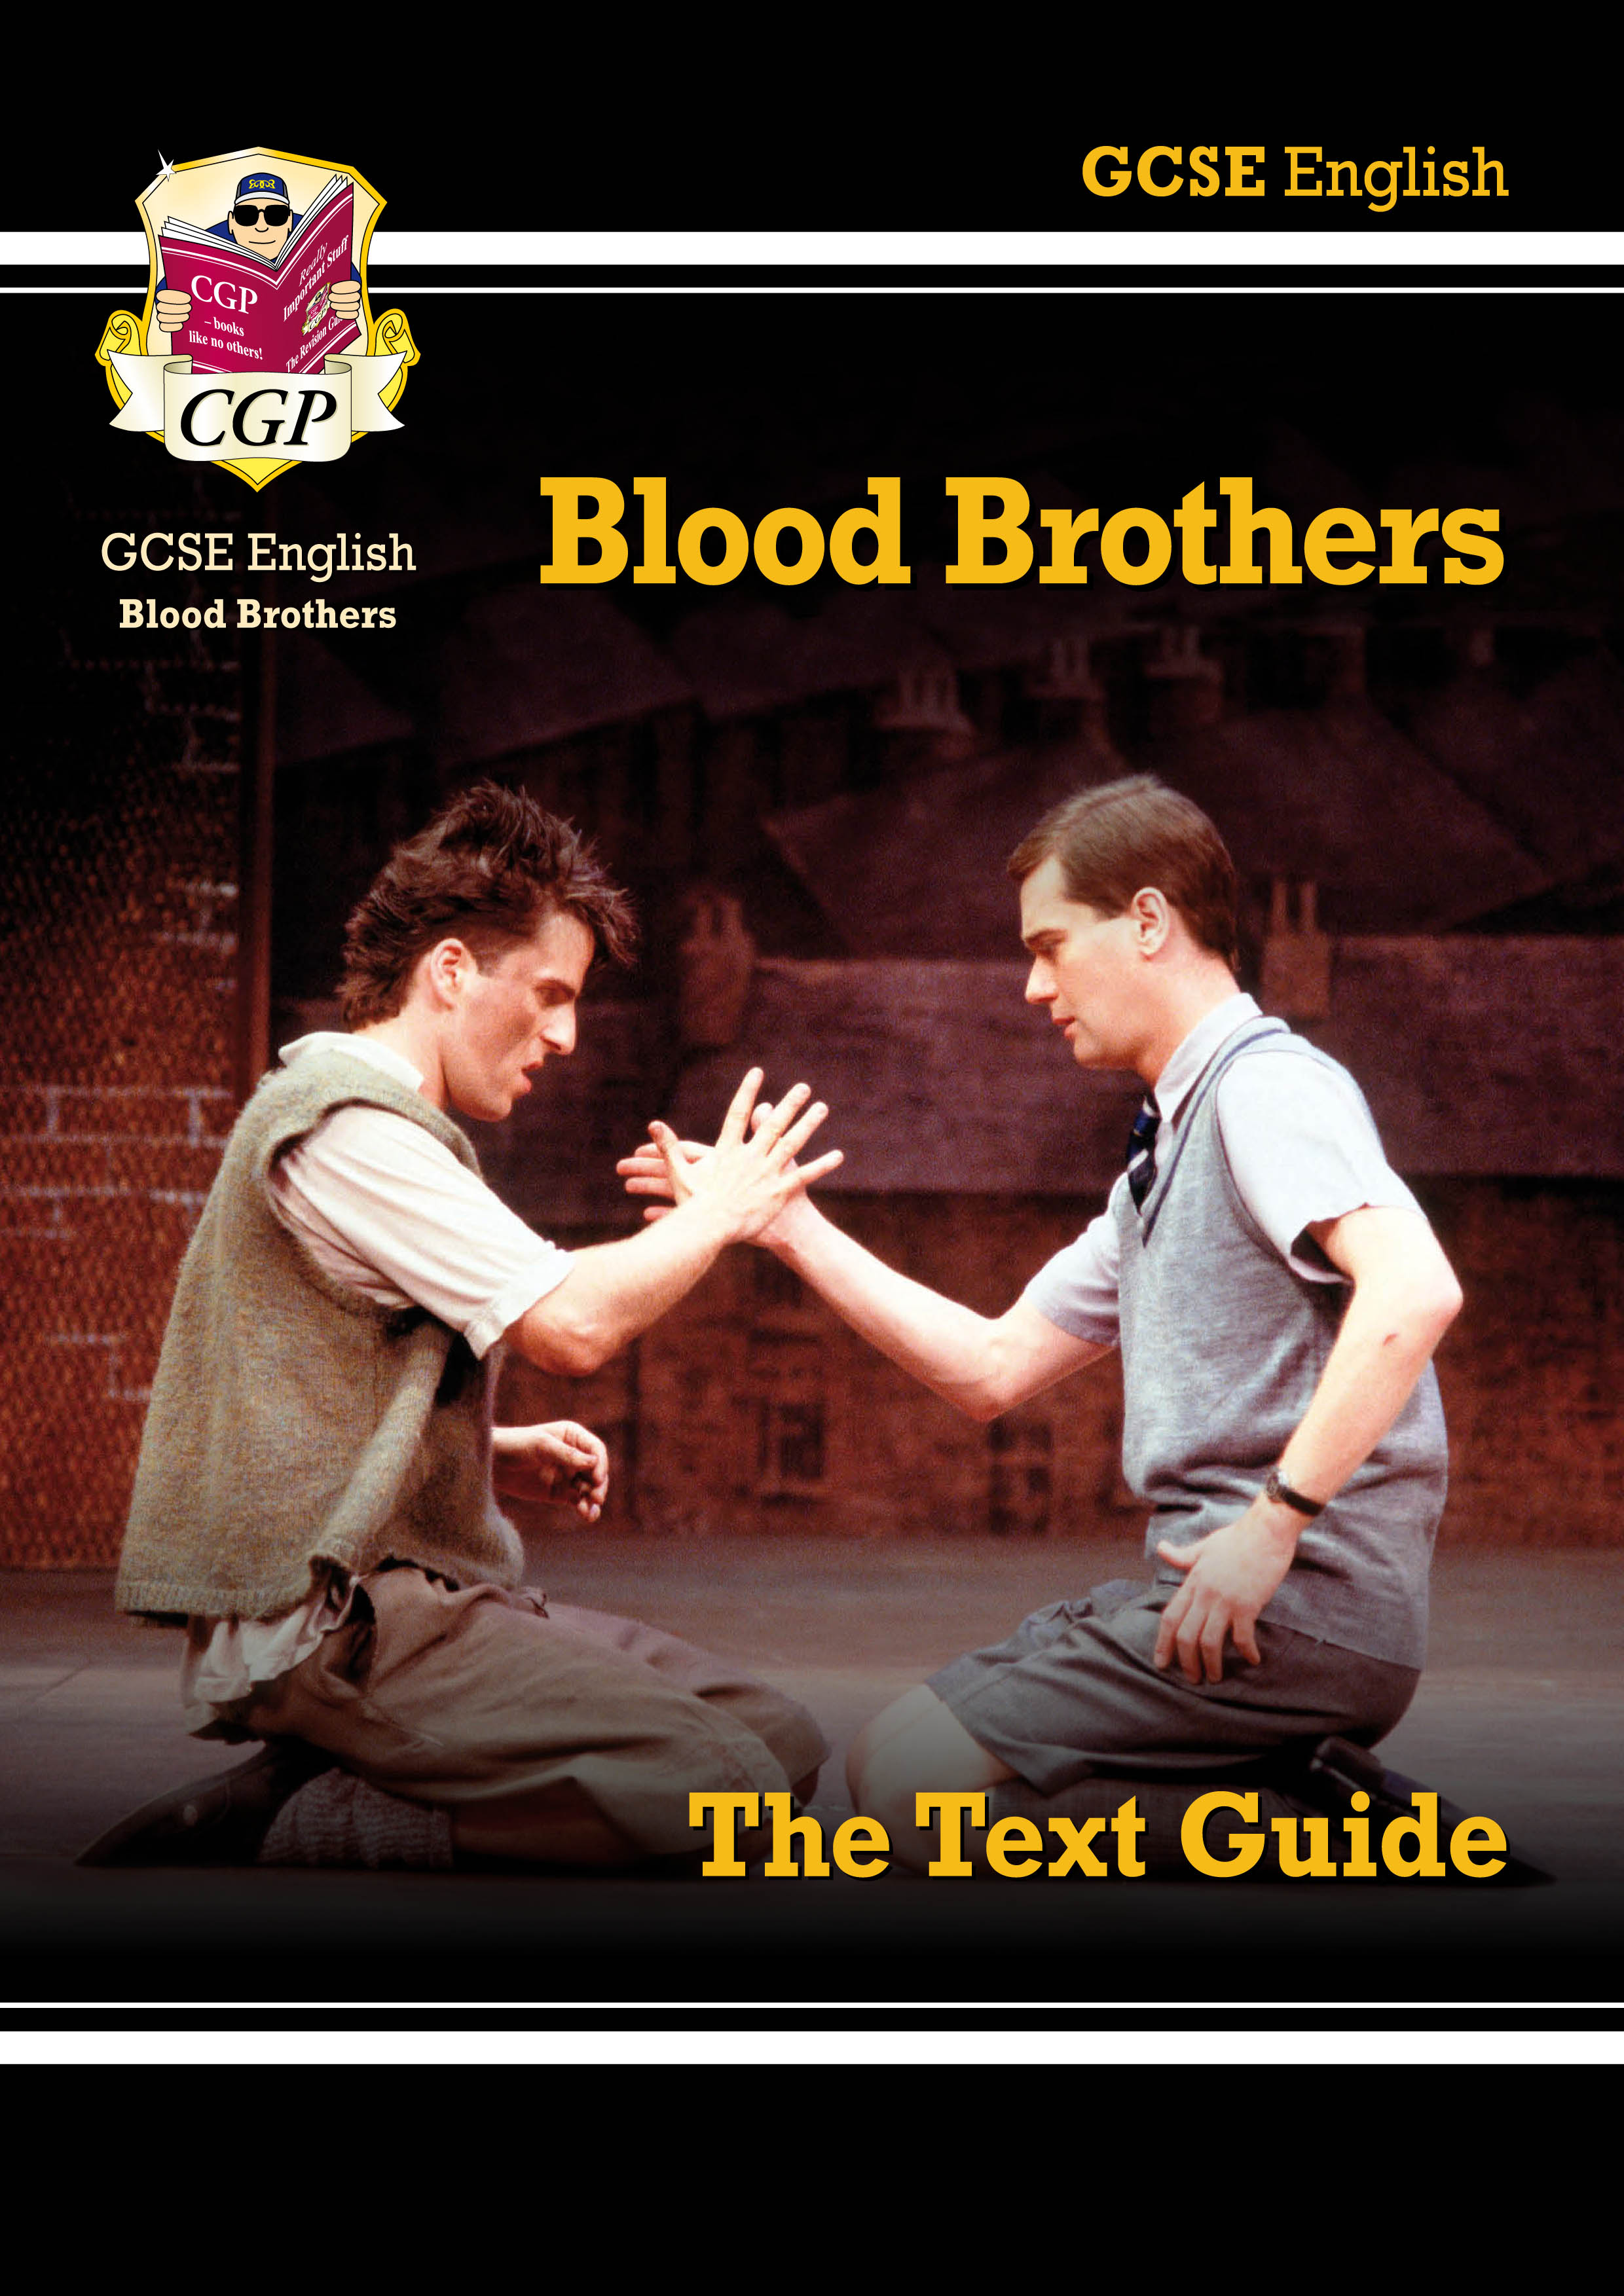 ETBB41DK - Grade 9-1 GCSE English Text Guide - Blood Brothers